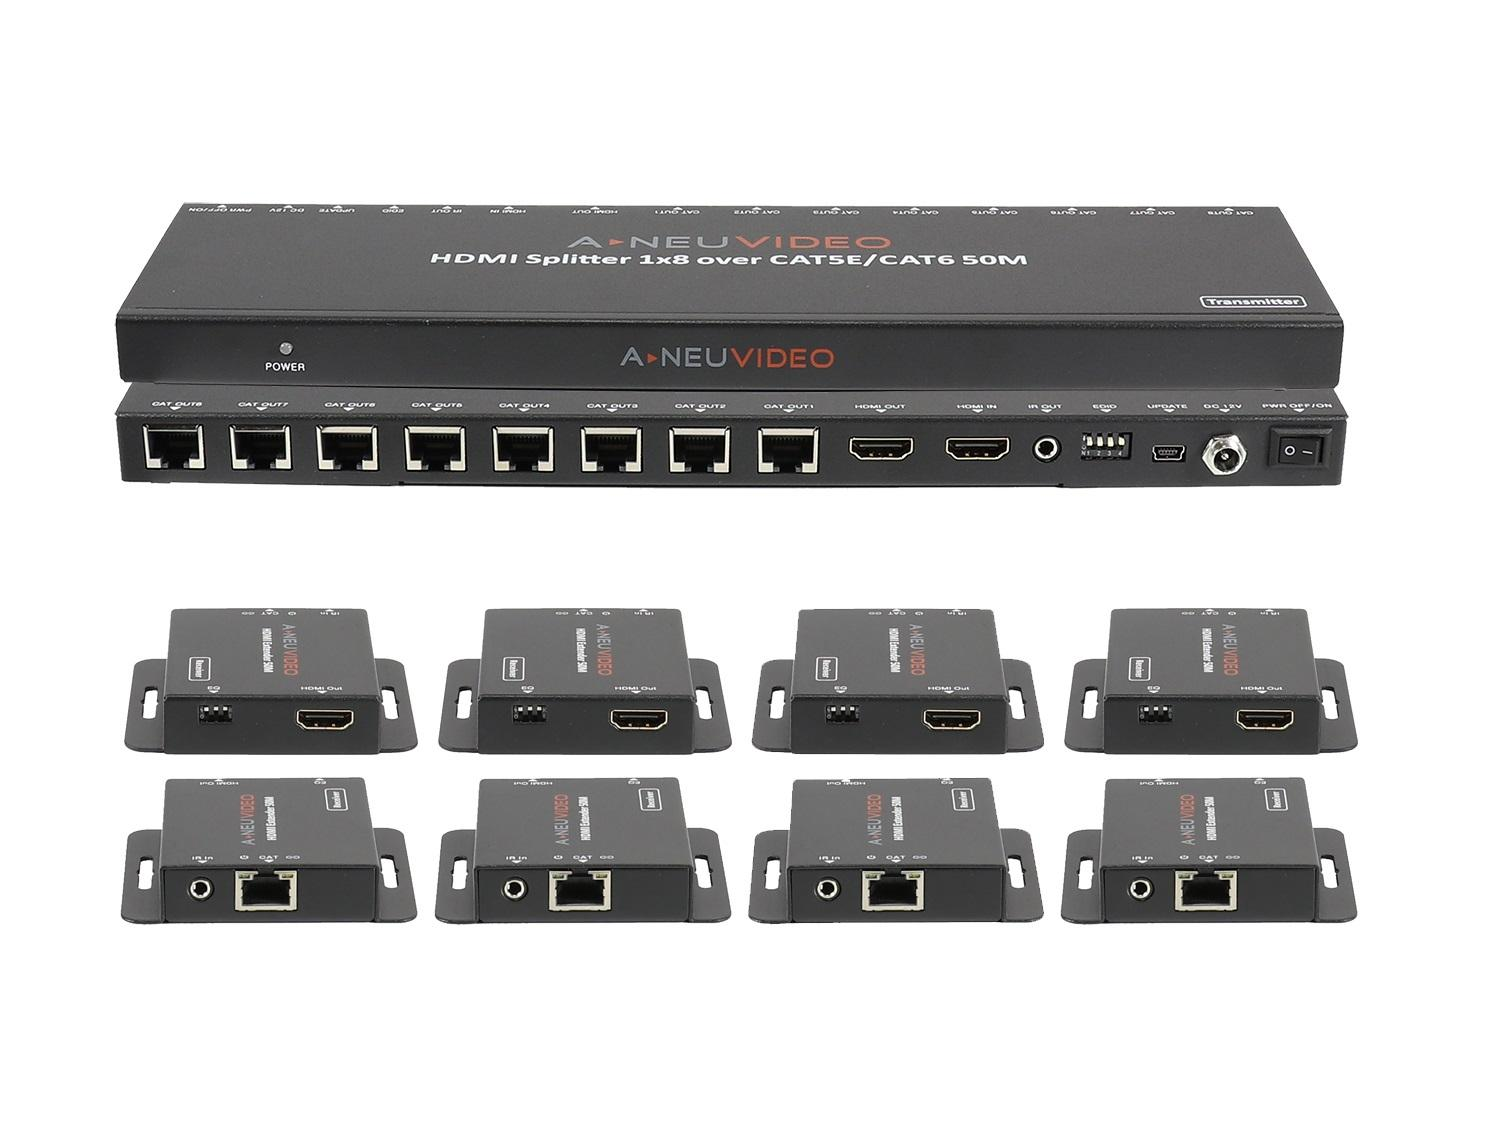 ANI-0108POE 1x8 POE HDMI Splitter Extender 150ft/45m over CAT5e/6 with 8x Receivers by A-NeuVideo